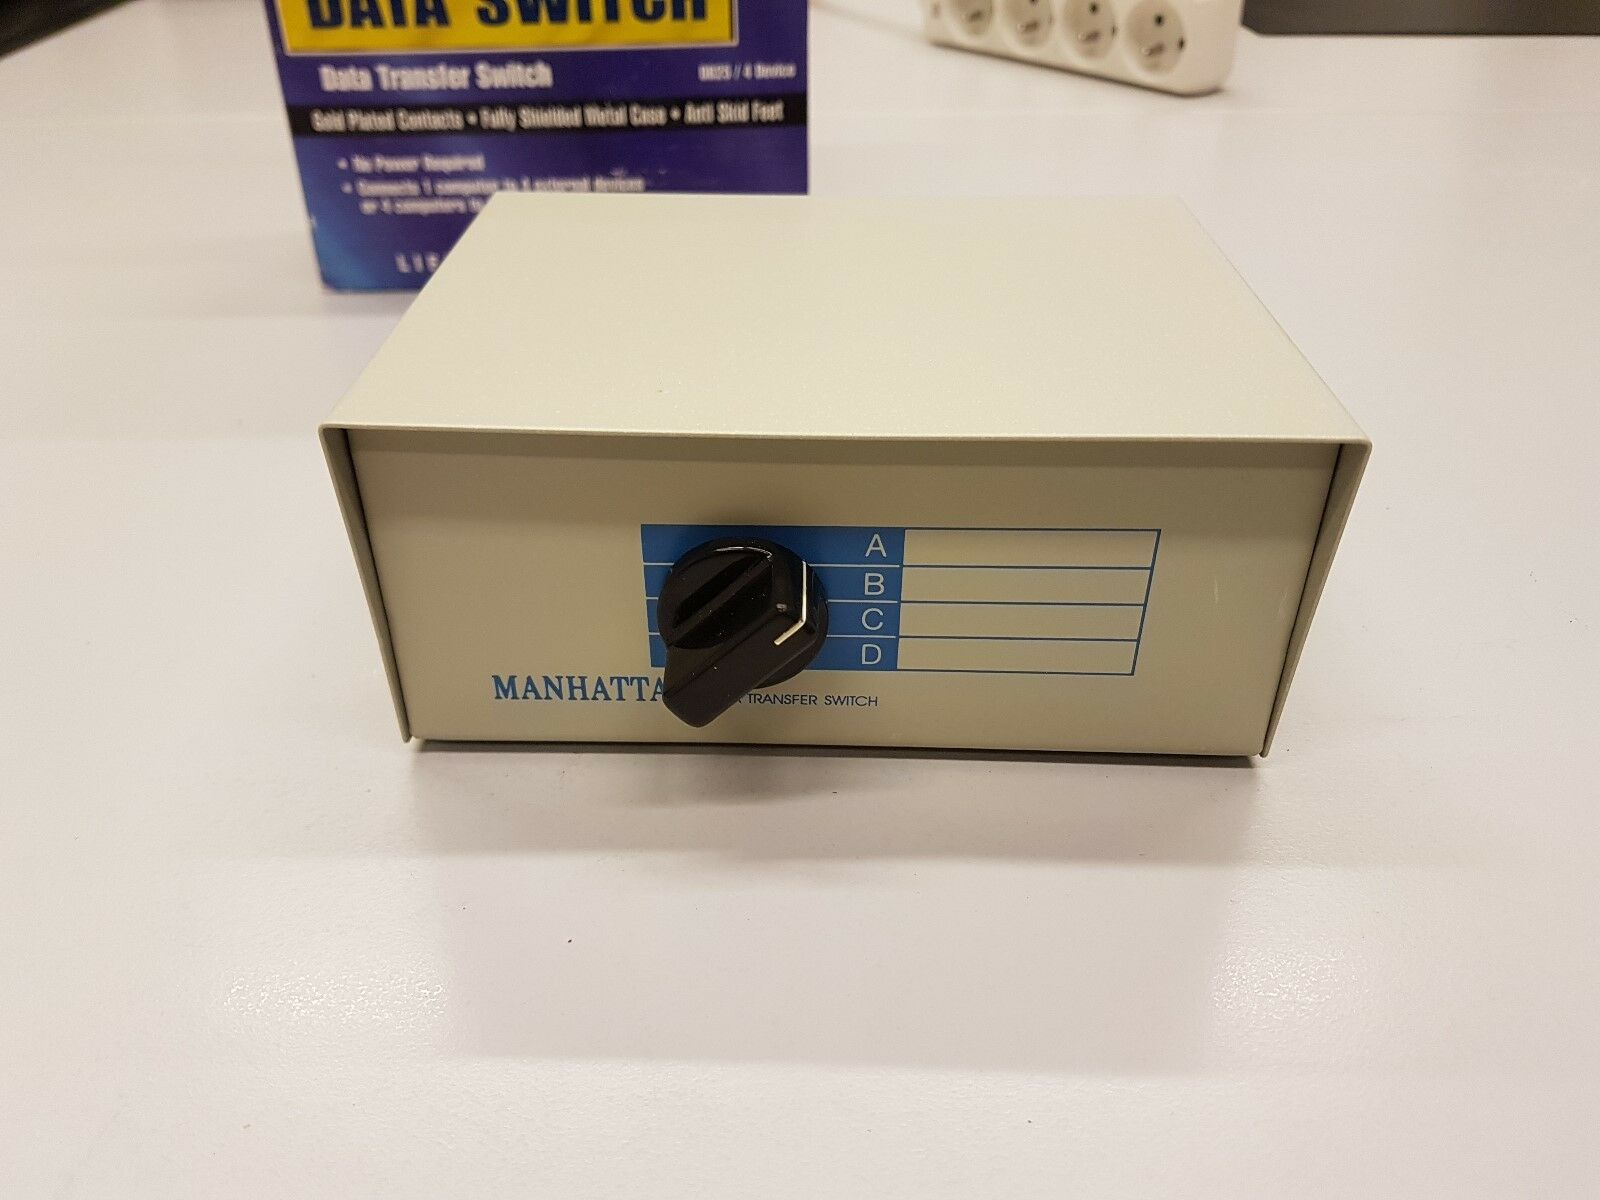 DB25 switchbox